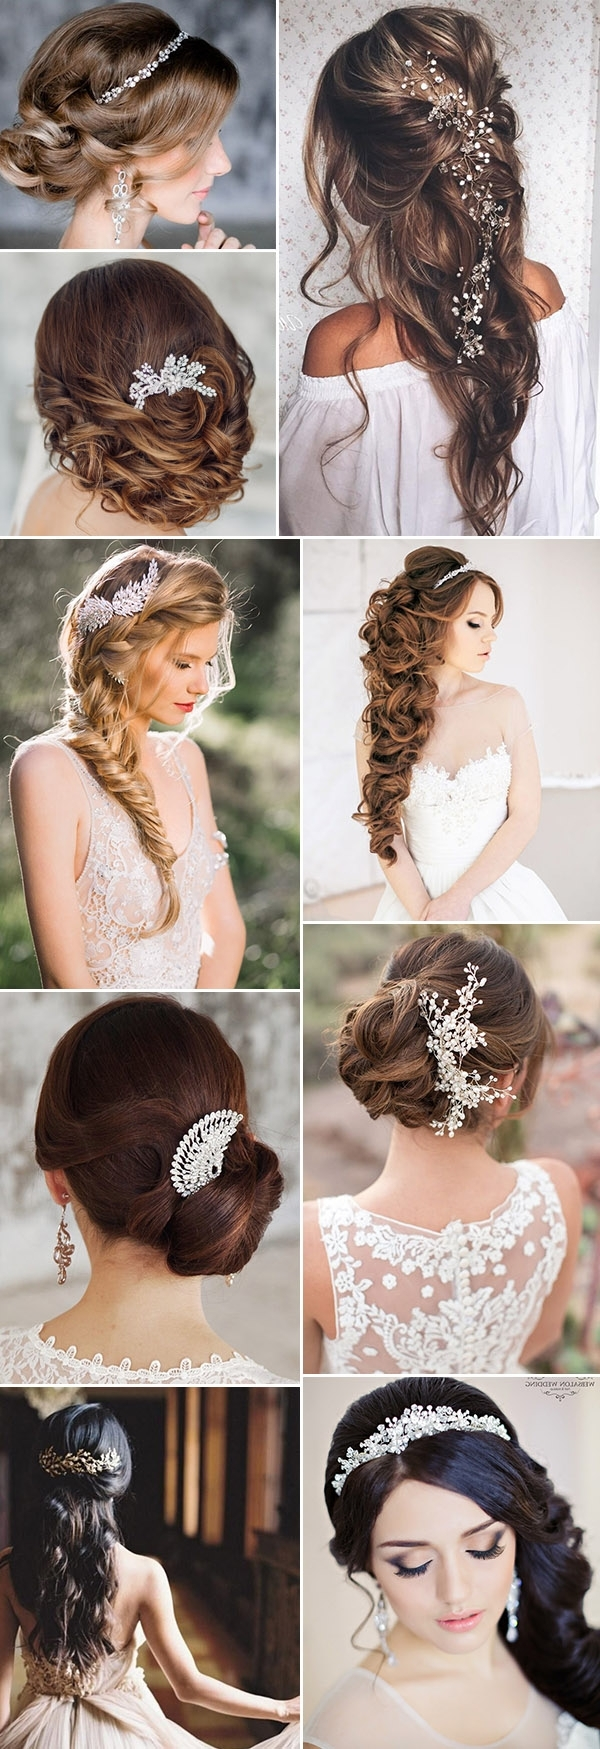 Top 20 Bridal Headpieces For Your Wedding Hairstyles Intended For Preferred Wedding Hairstyles With Hair Jewelry (View 14 of 15)